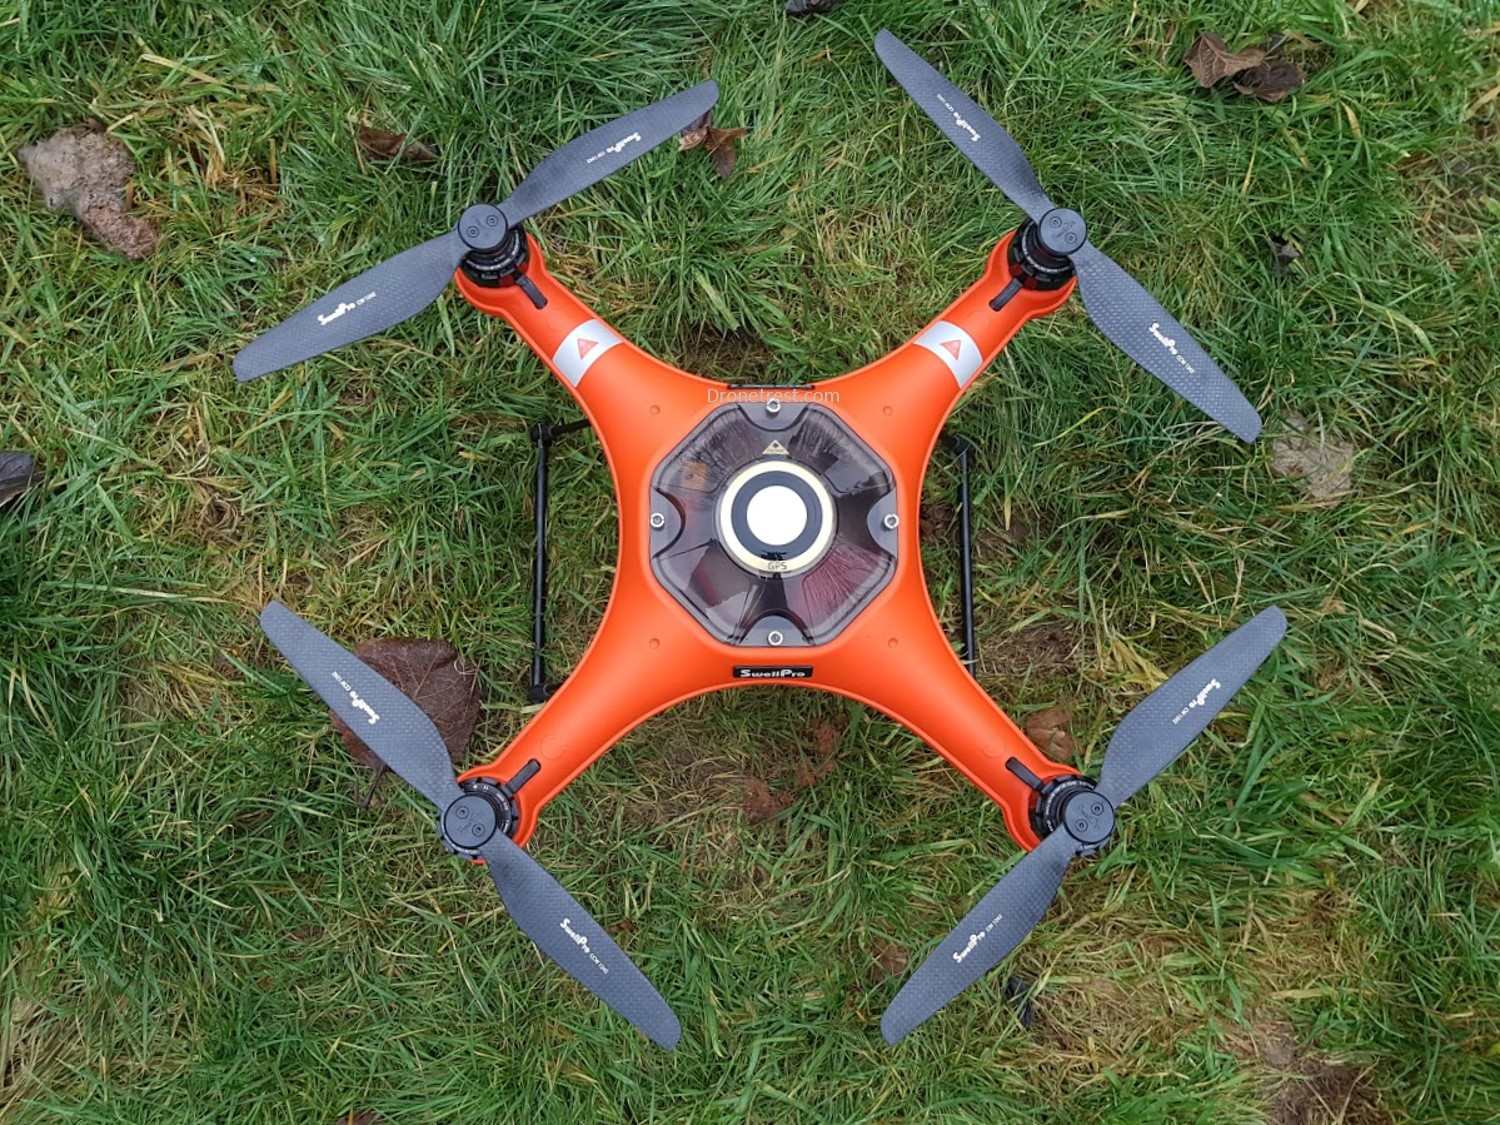 Swell Pro Spash Drone top.jpg